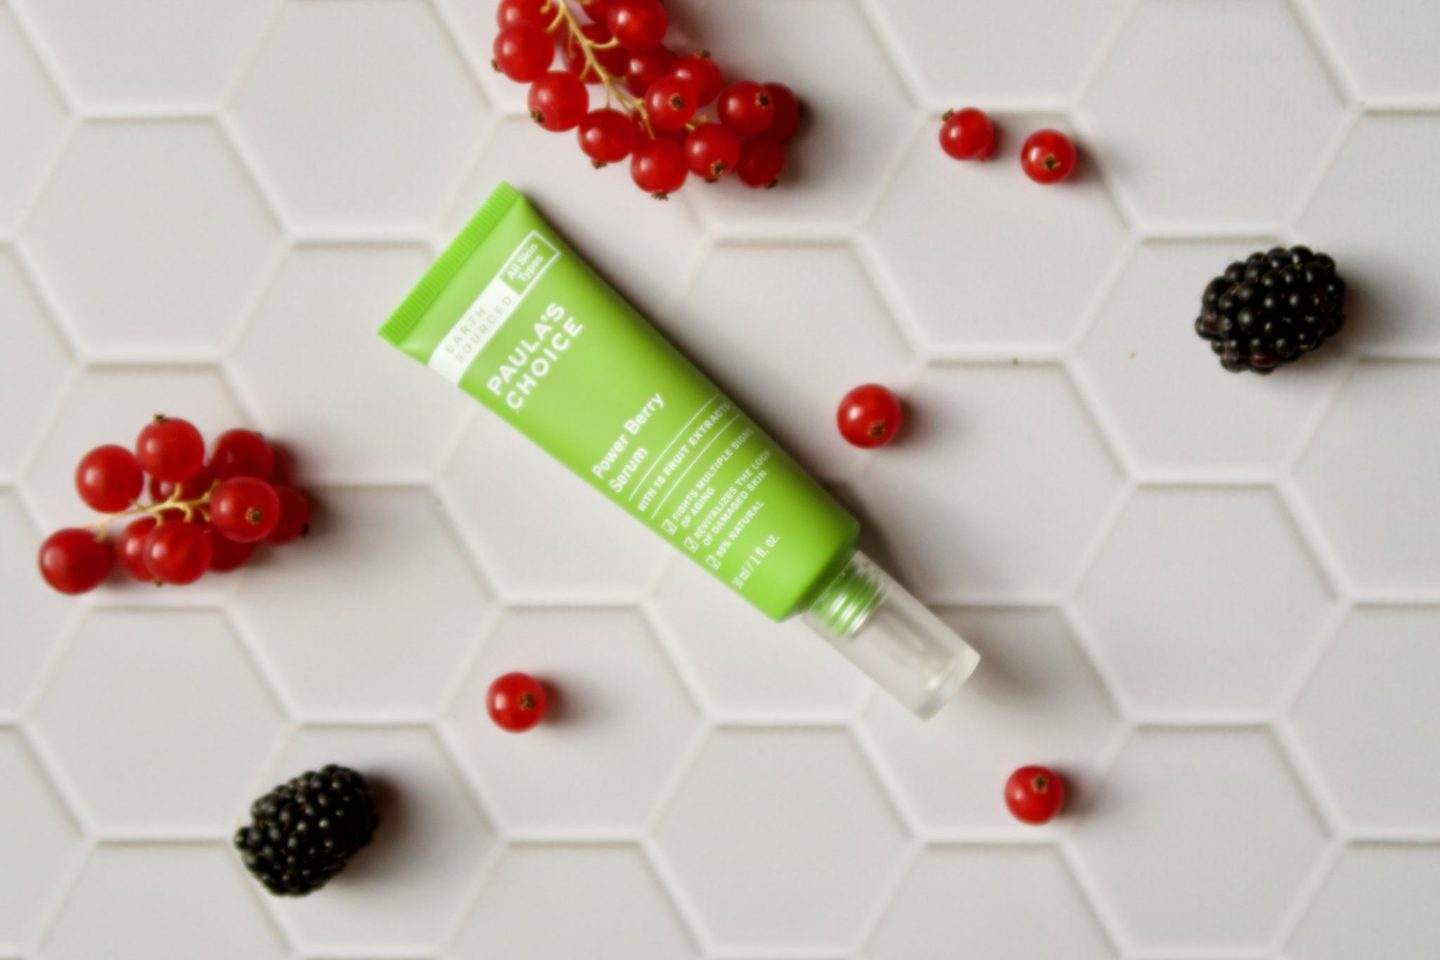 Paula's Choice Power Berry serum.